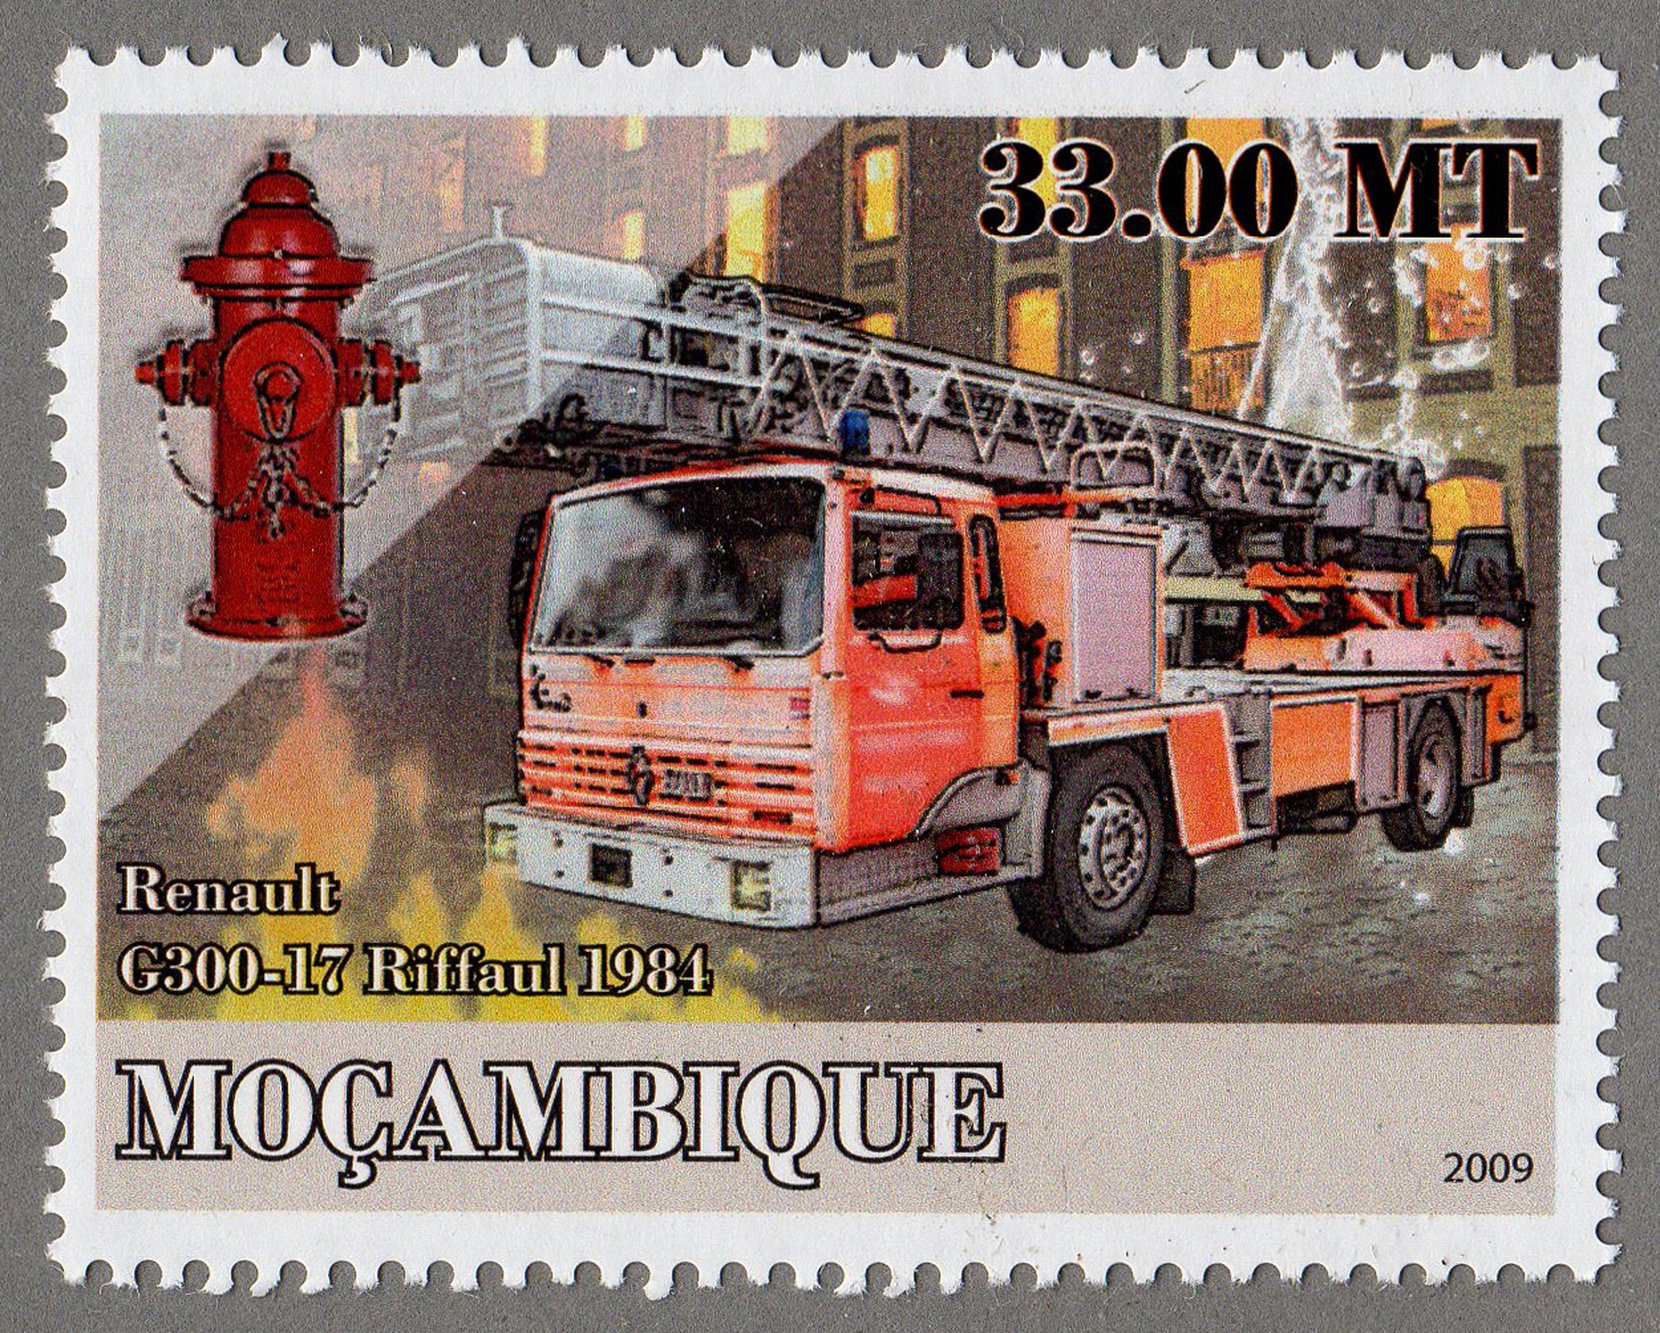 renault g300-17 riffaul 1984, 2009 stamp philately postage stamps